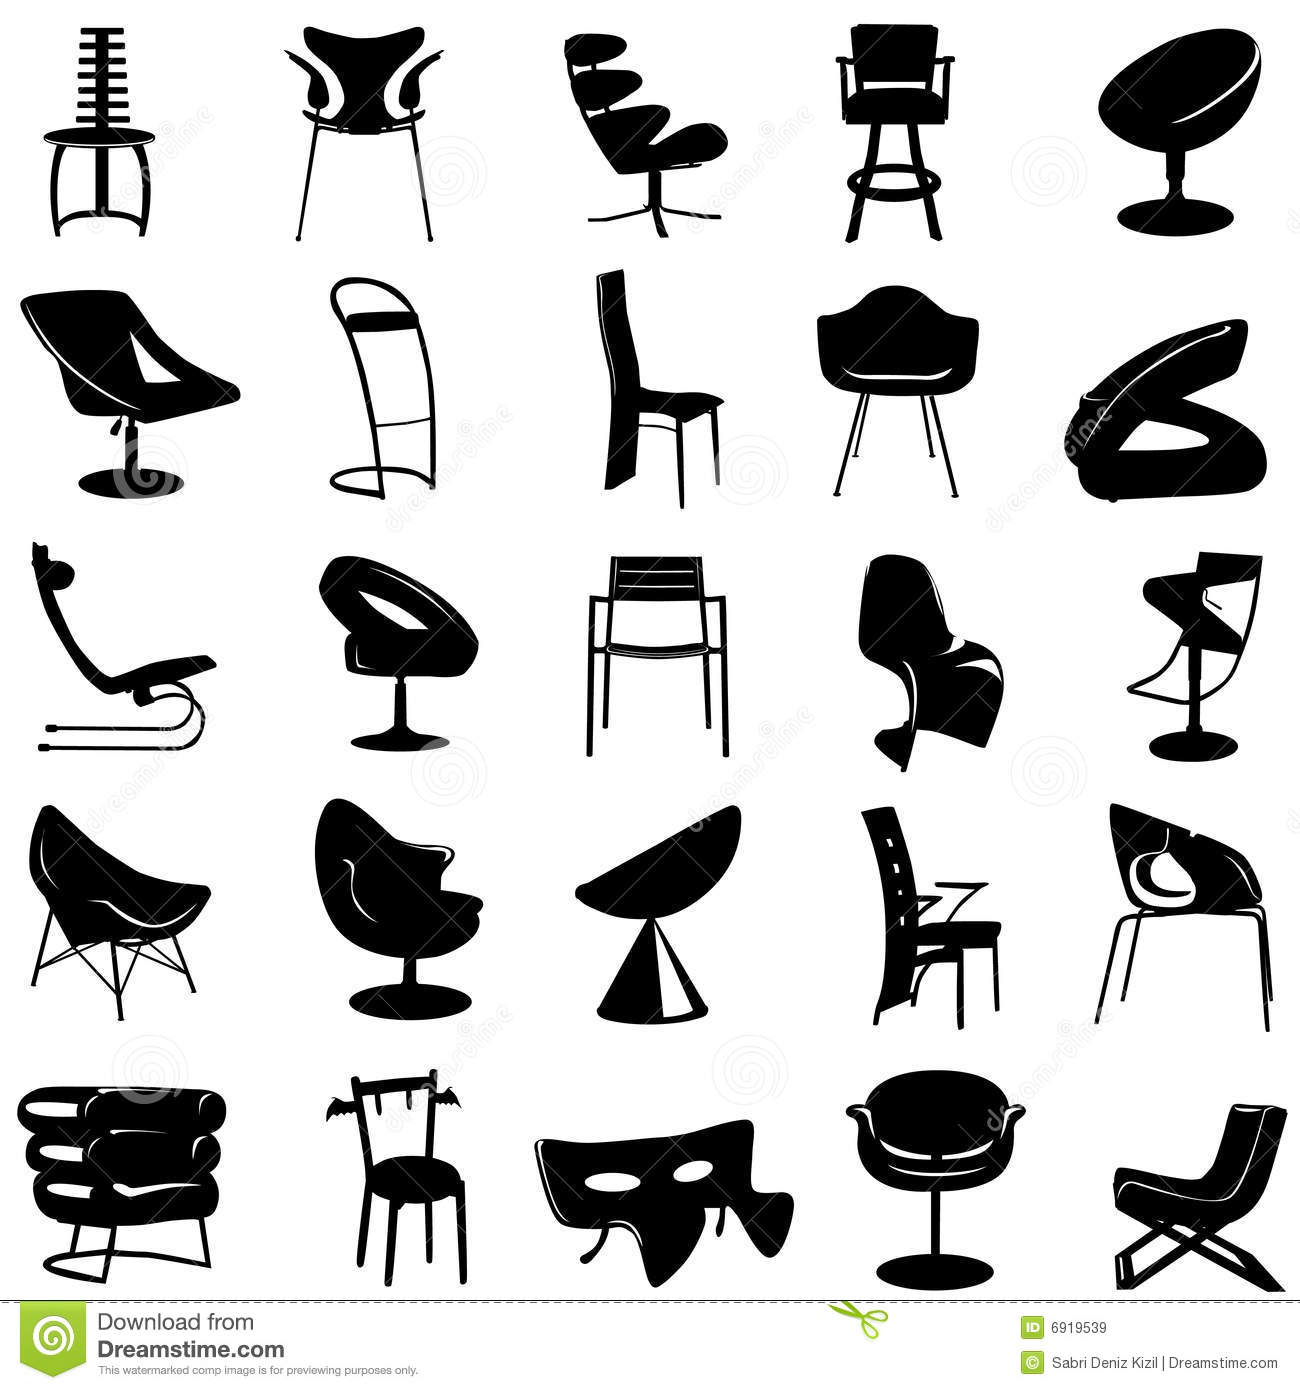 Modern chair vector stock vector. Illustration of colors - 6919539